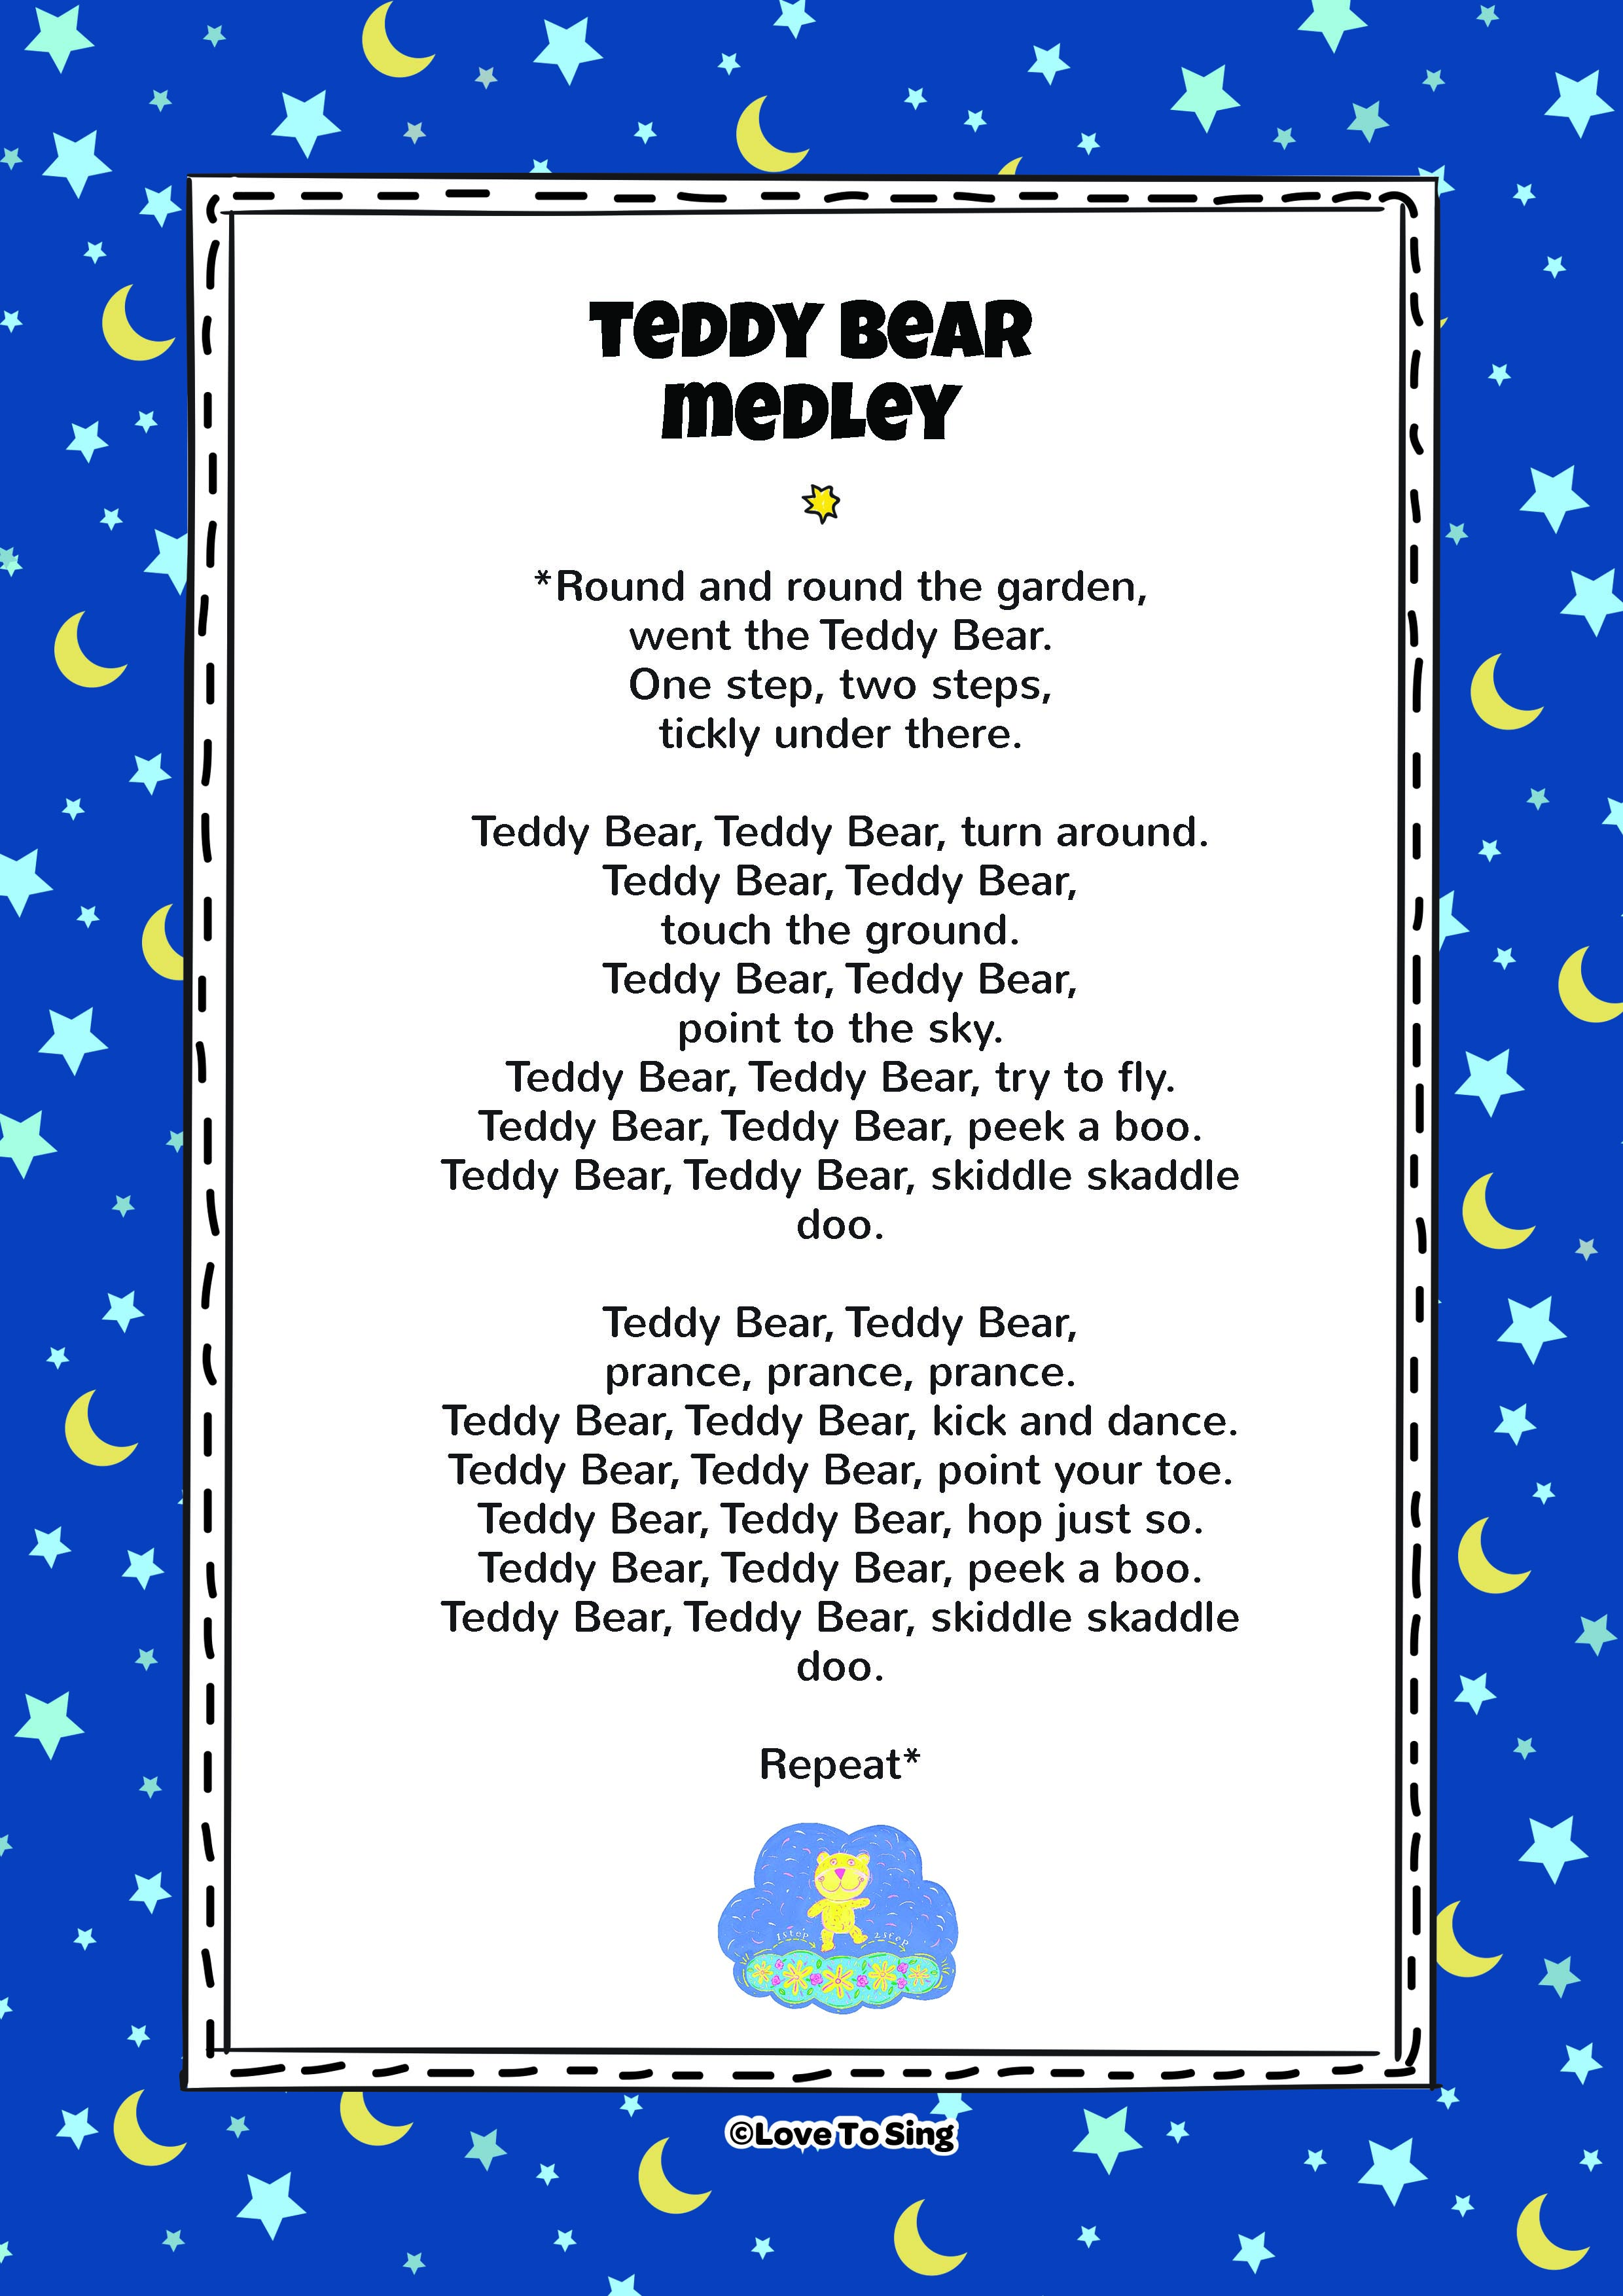 Teddy Bear Medley Nursery Rhyme Free Kids Videos